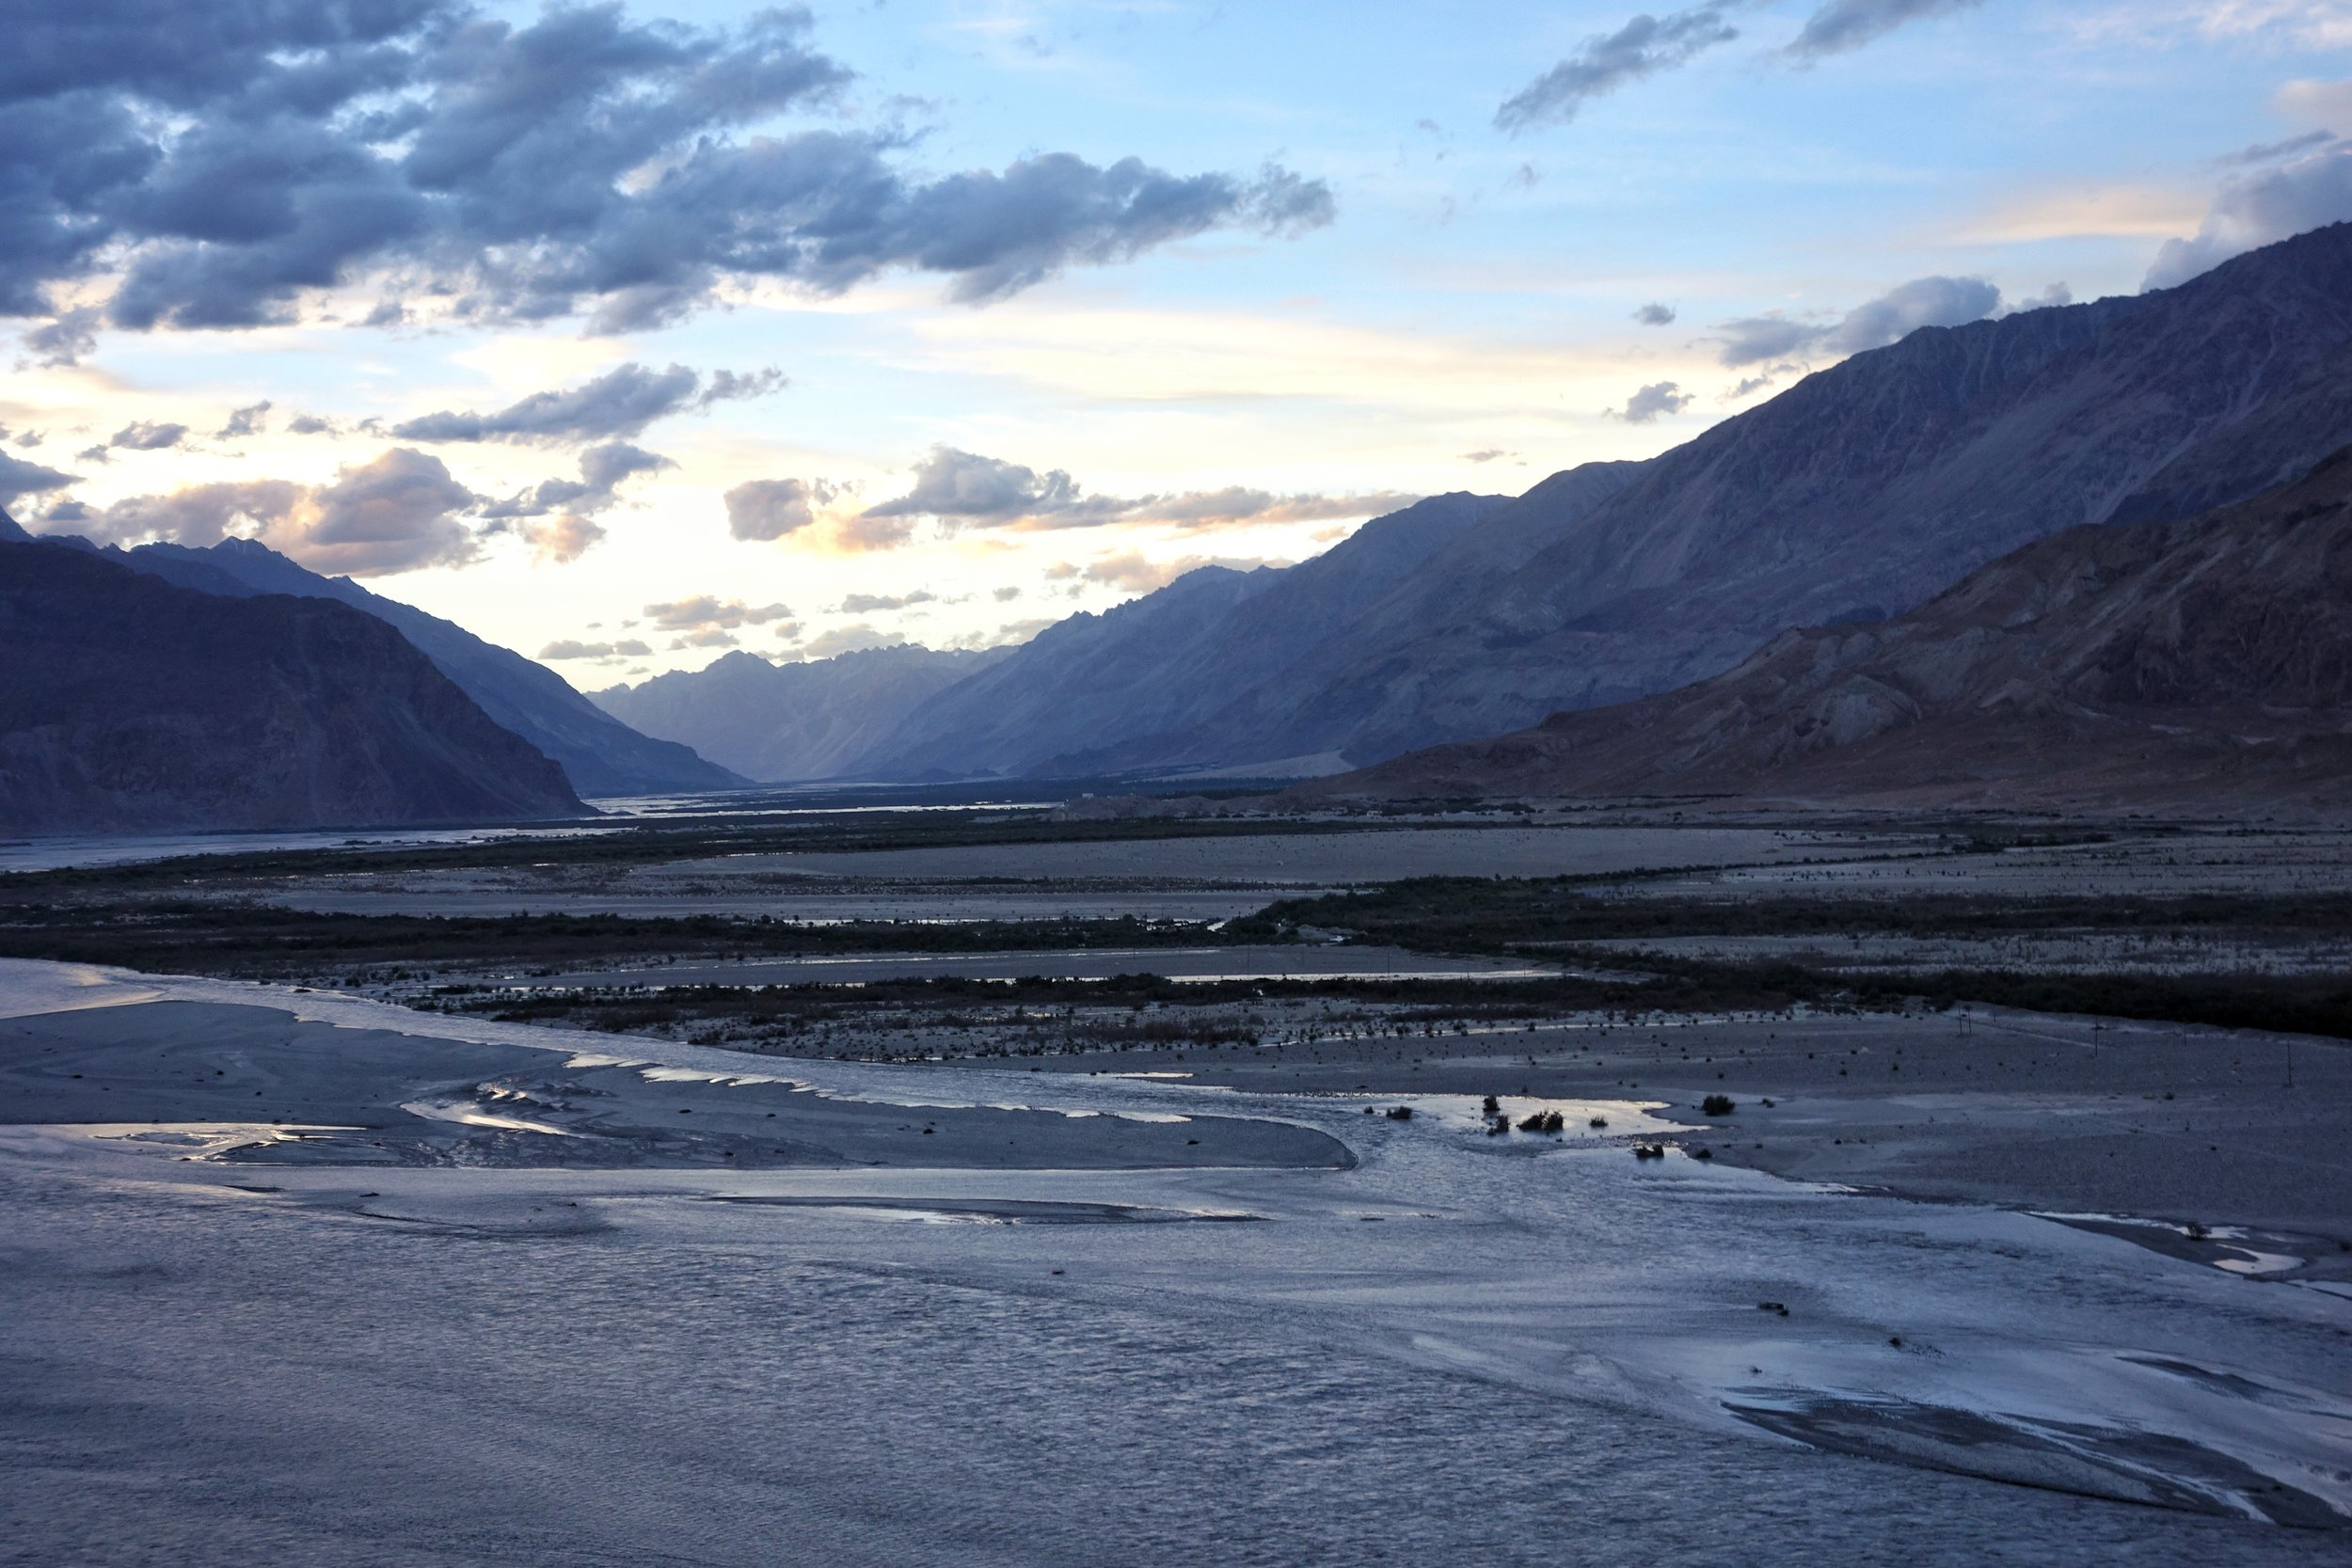 The vast flood plain where the Shyok meets the Nubra